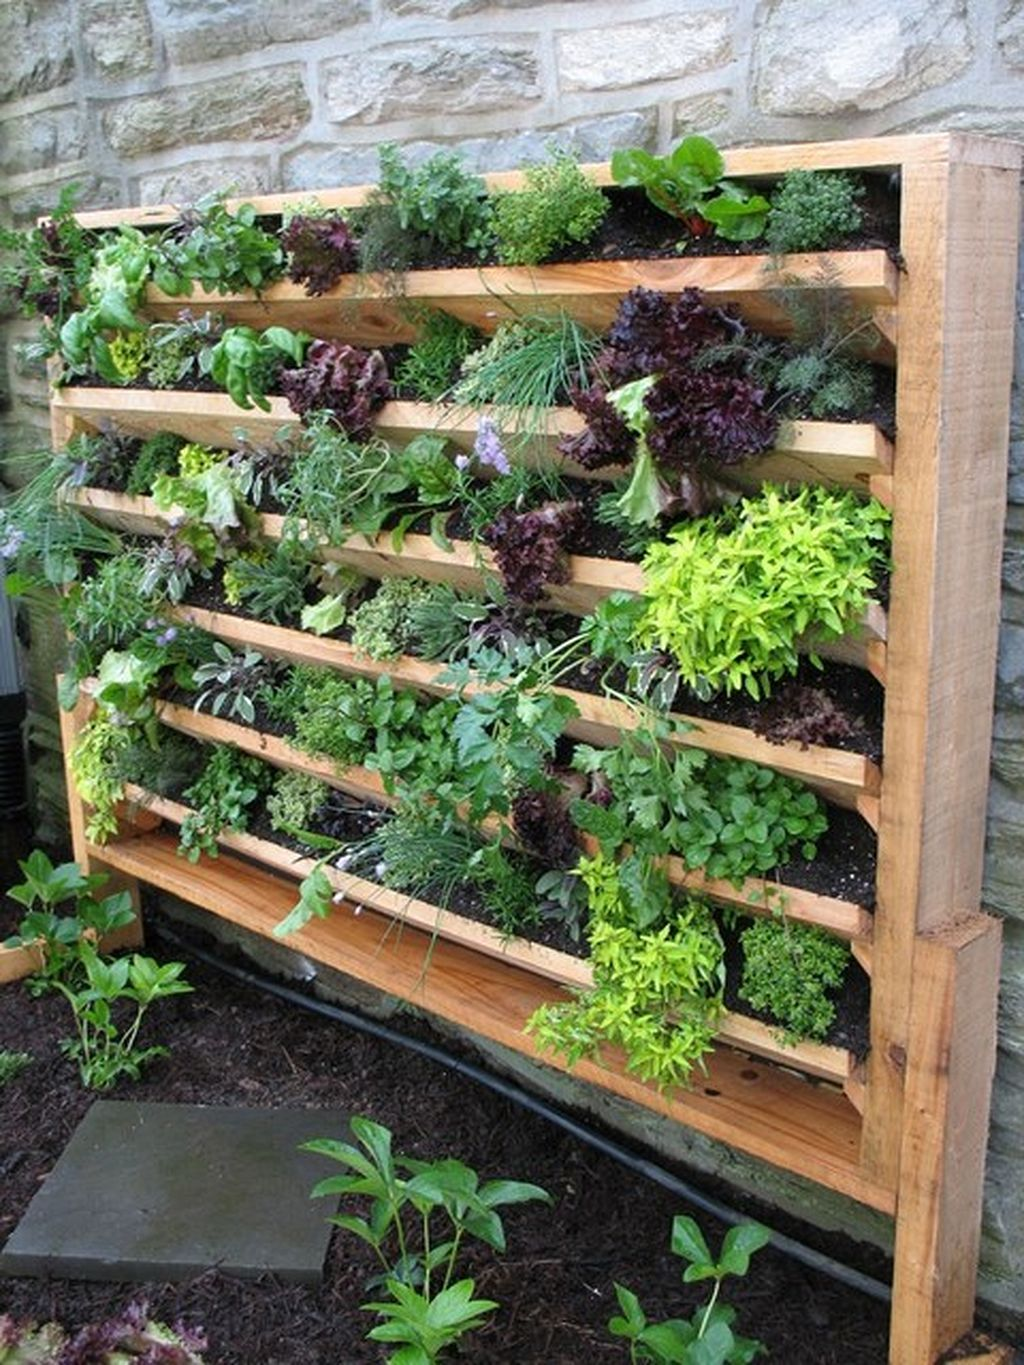 Awesome 38 Incredible Hydroponic Garden At Backyard Https Gardenmagz Com 38 Incredible Hydroponic Vertical Garden Diy Vertical Garden Vertical Garden Design